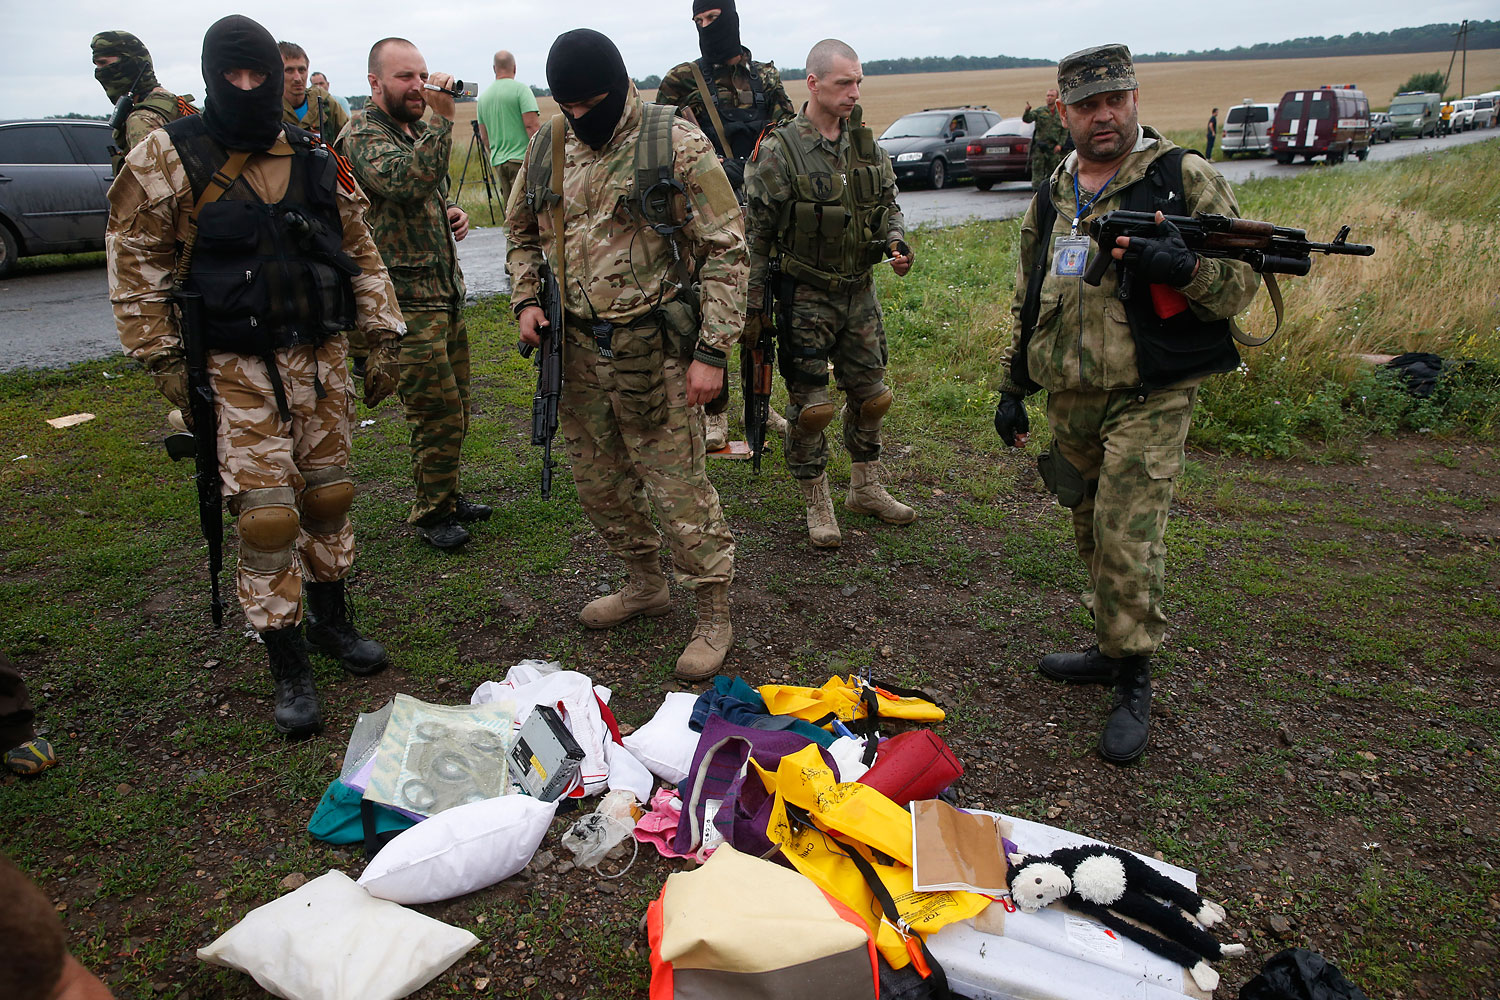 Pro-Russian separatists look at passengers' belongings at the crash site of Malaysia Airlines flight MH17, near the settlement of Grabovo in the Donetsk region, July 18, 2014.